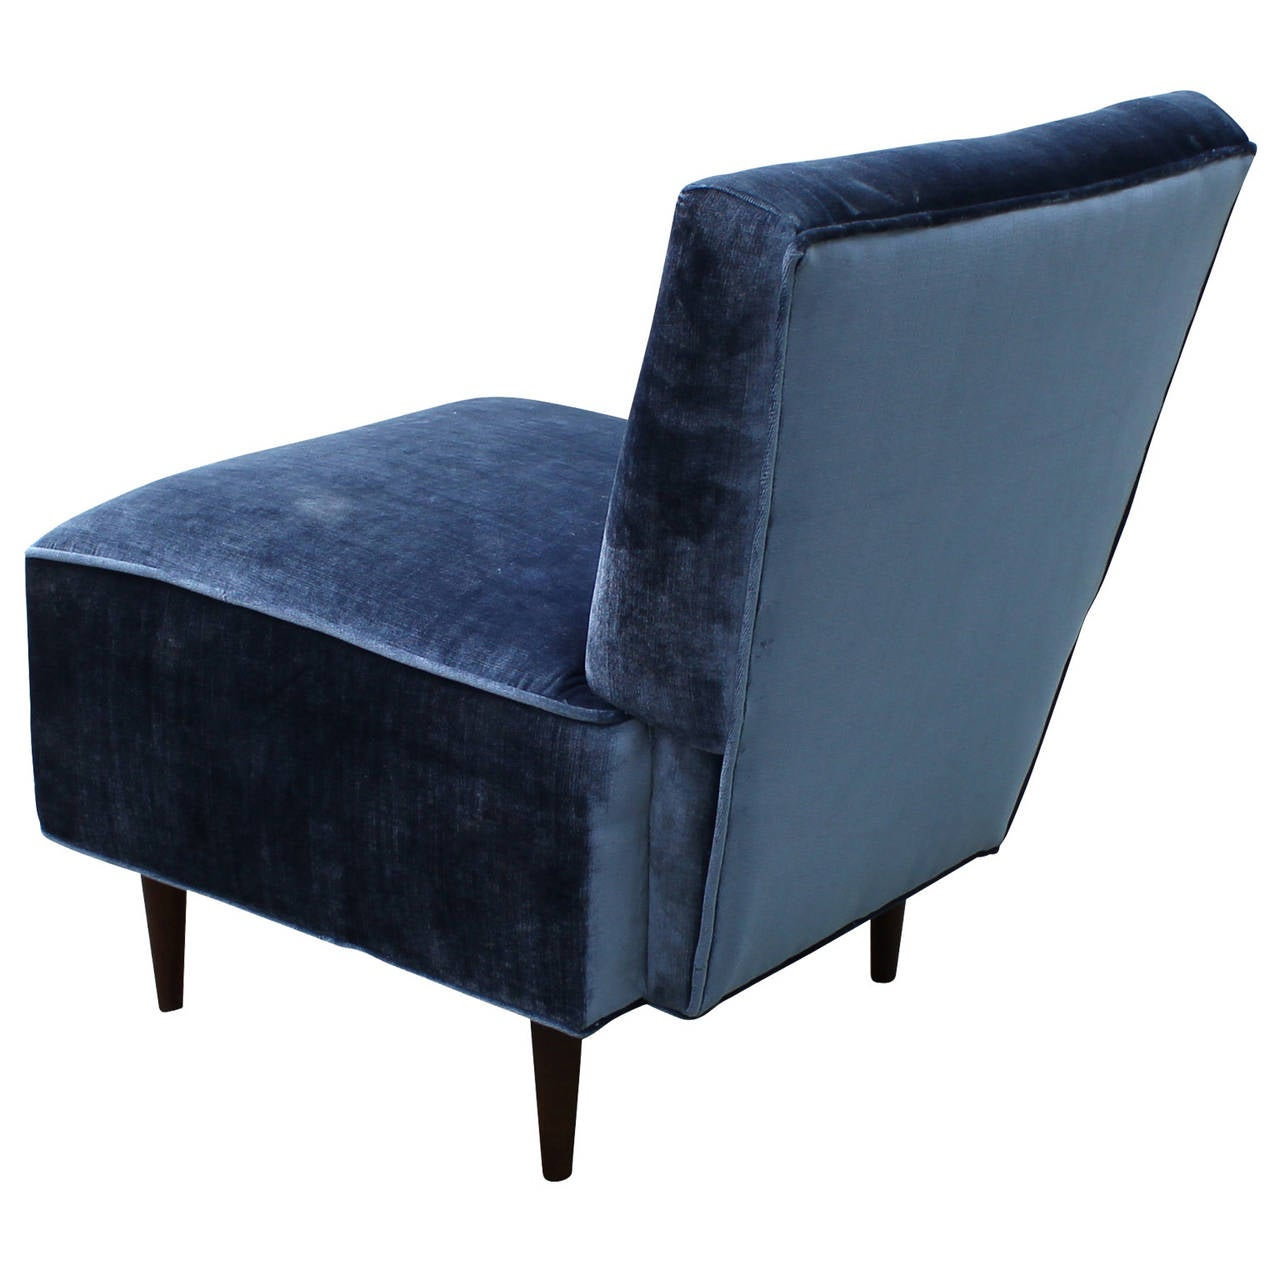 Blue Slipper Chair Fantastic Blue Velvet Slipper Chair At 1stdibs